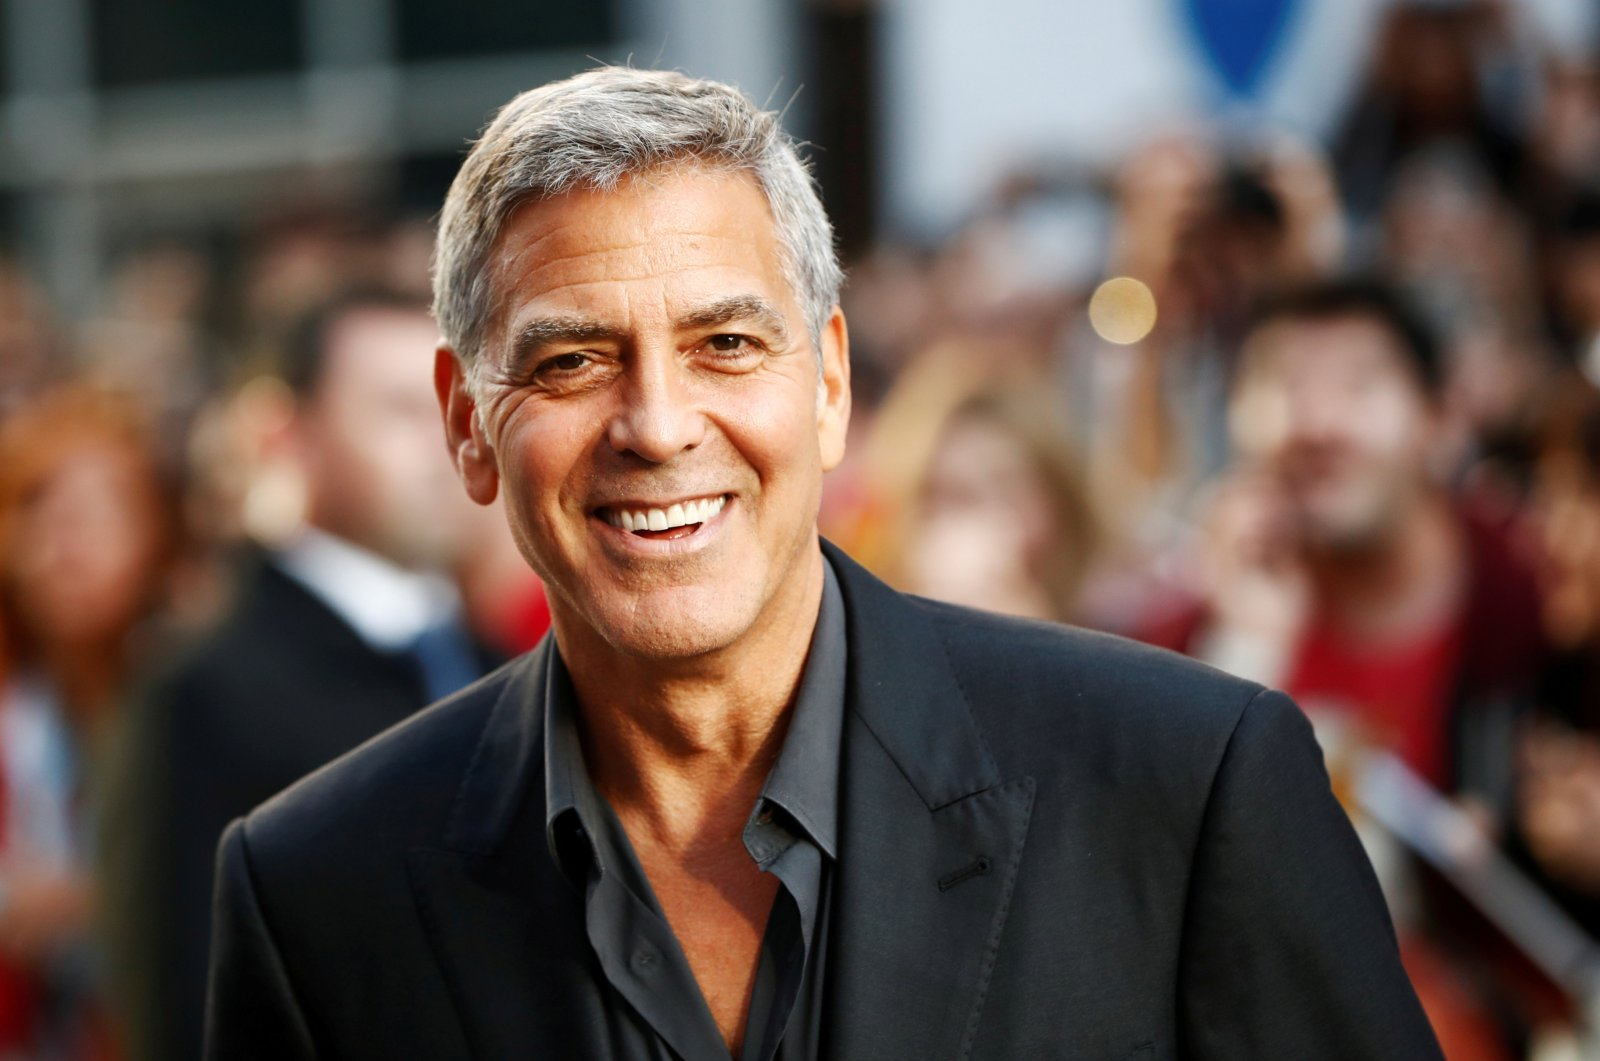 """Actor George Clooney arrives on the red carpet for the film """"Suburbicon"""" at the Toronto International Film Festival (TIFF), in Toronto, Canada, Sept. 9, 2017. (Reuters Photo)"""